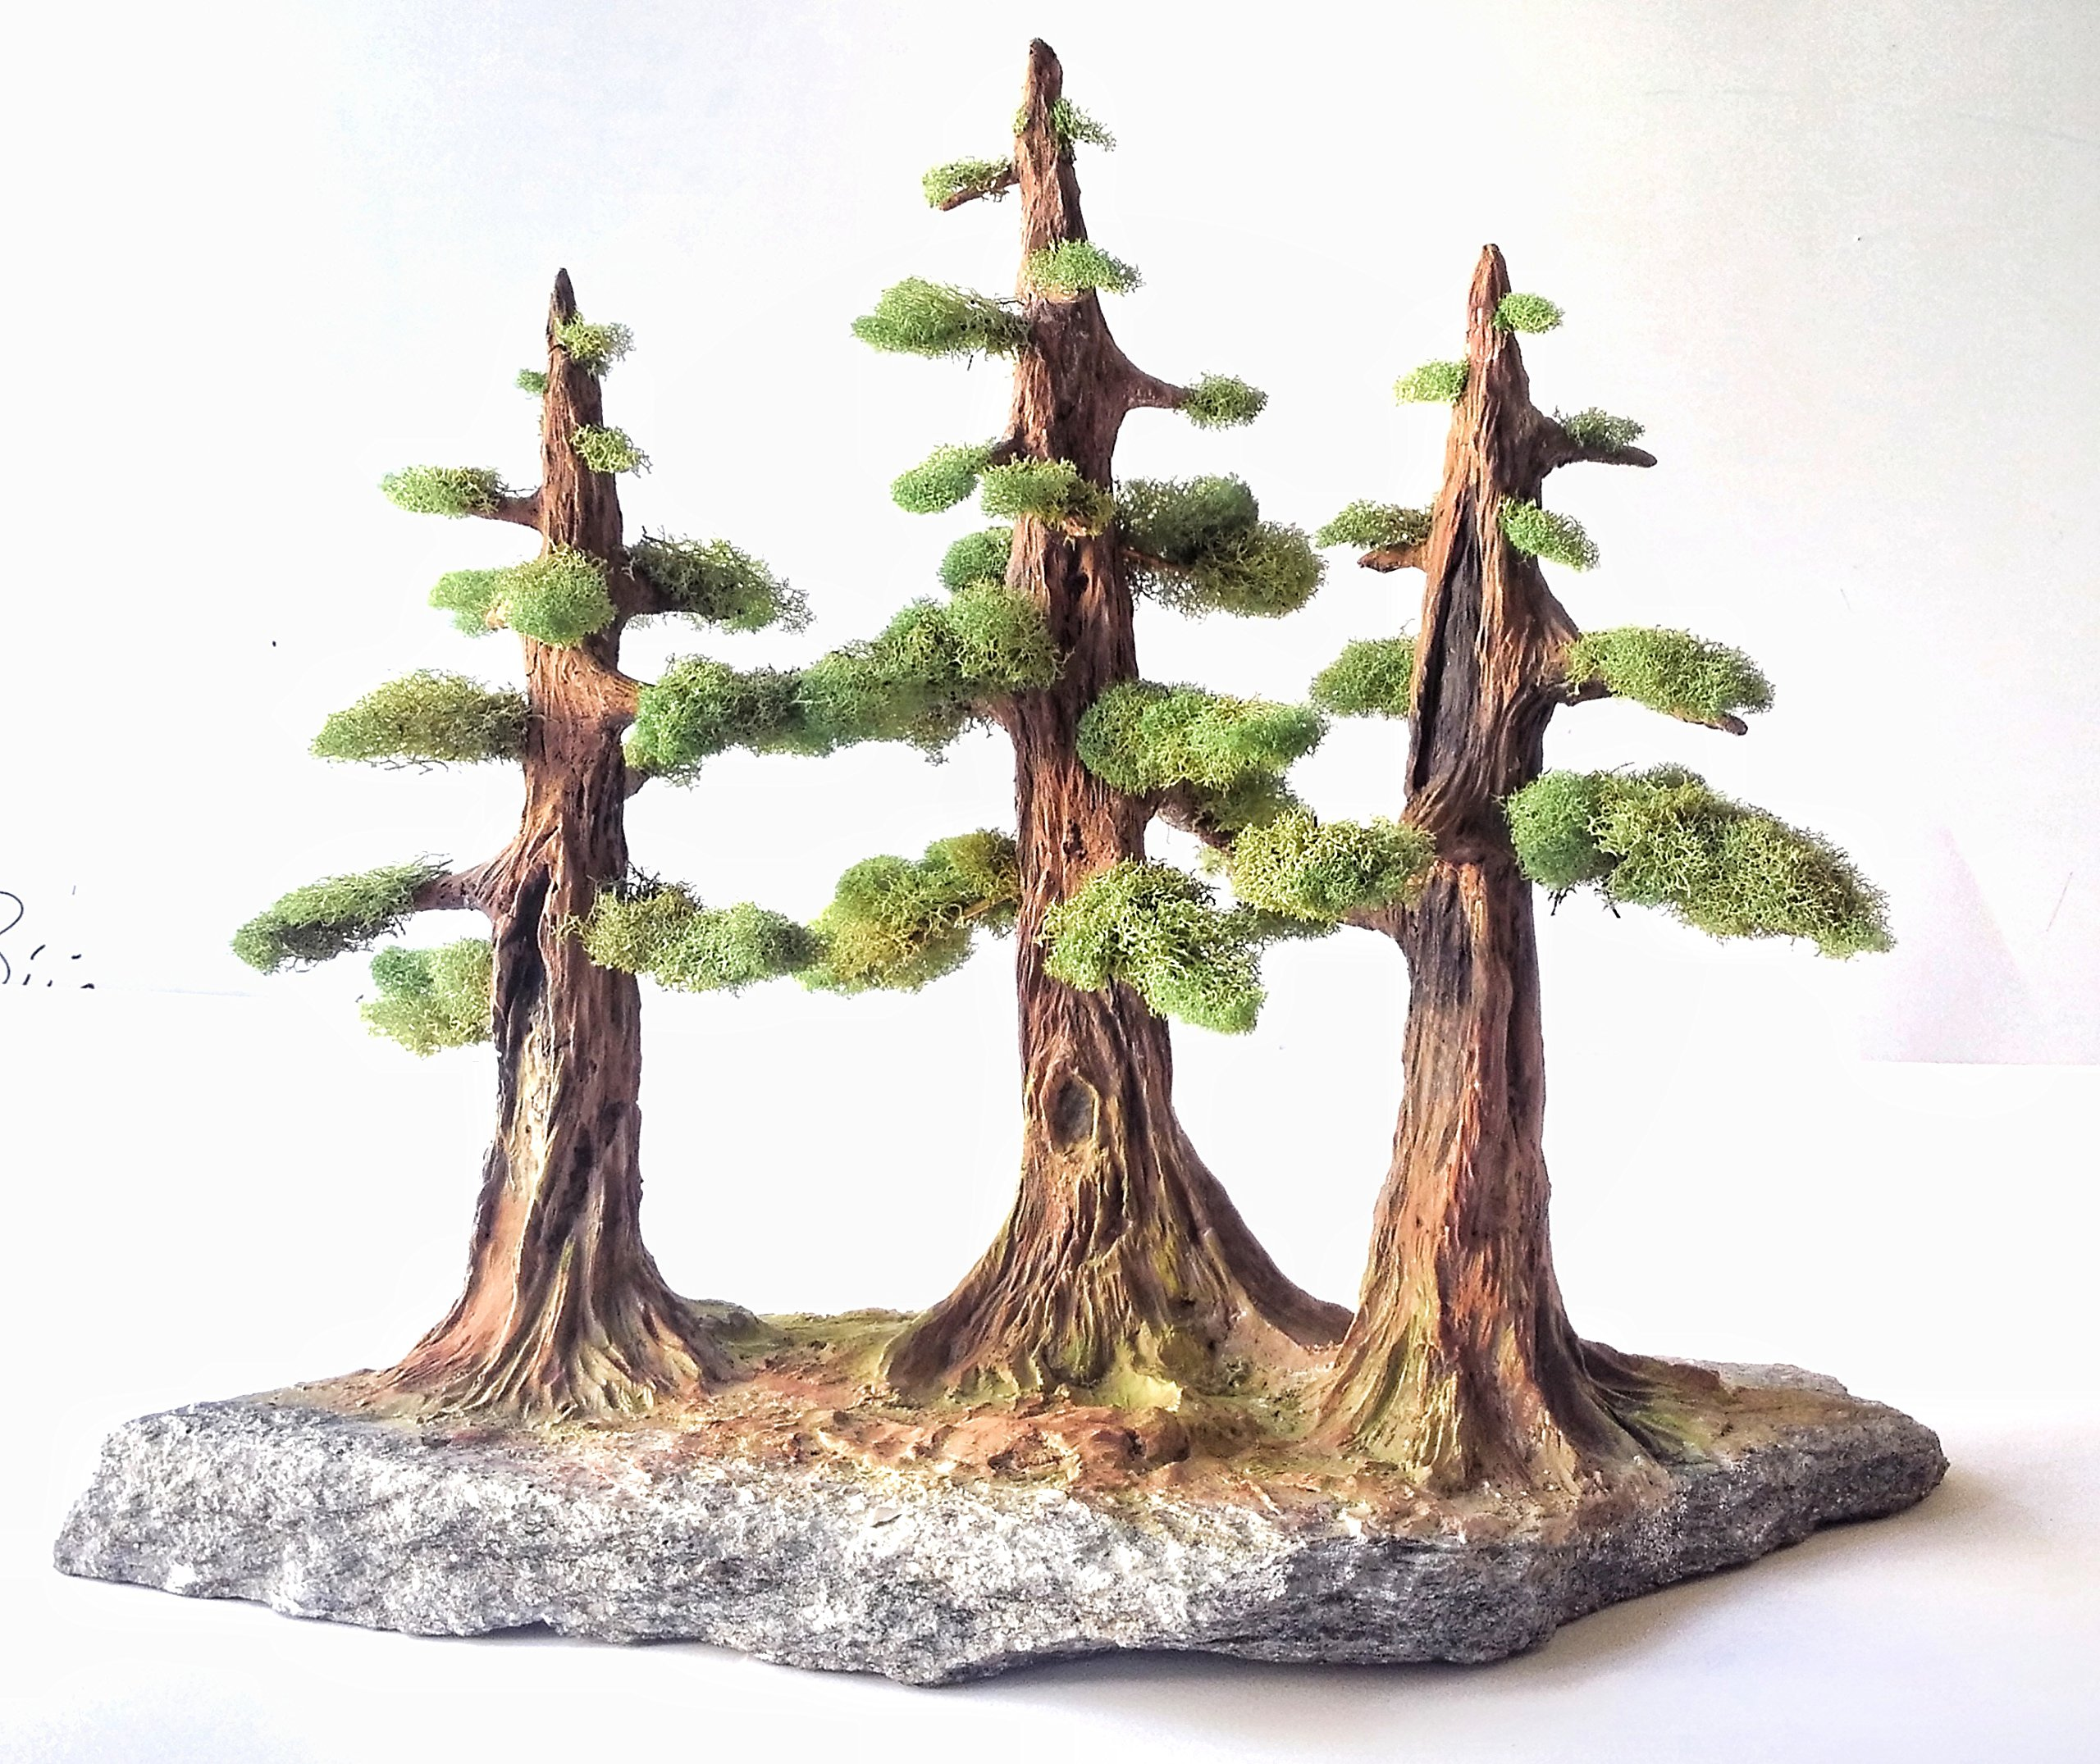 Artificial Bonsai Tree - 3 Bonsai Trees Set - Very Realistic Bonsai Tree